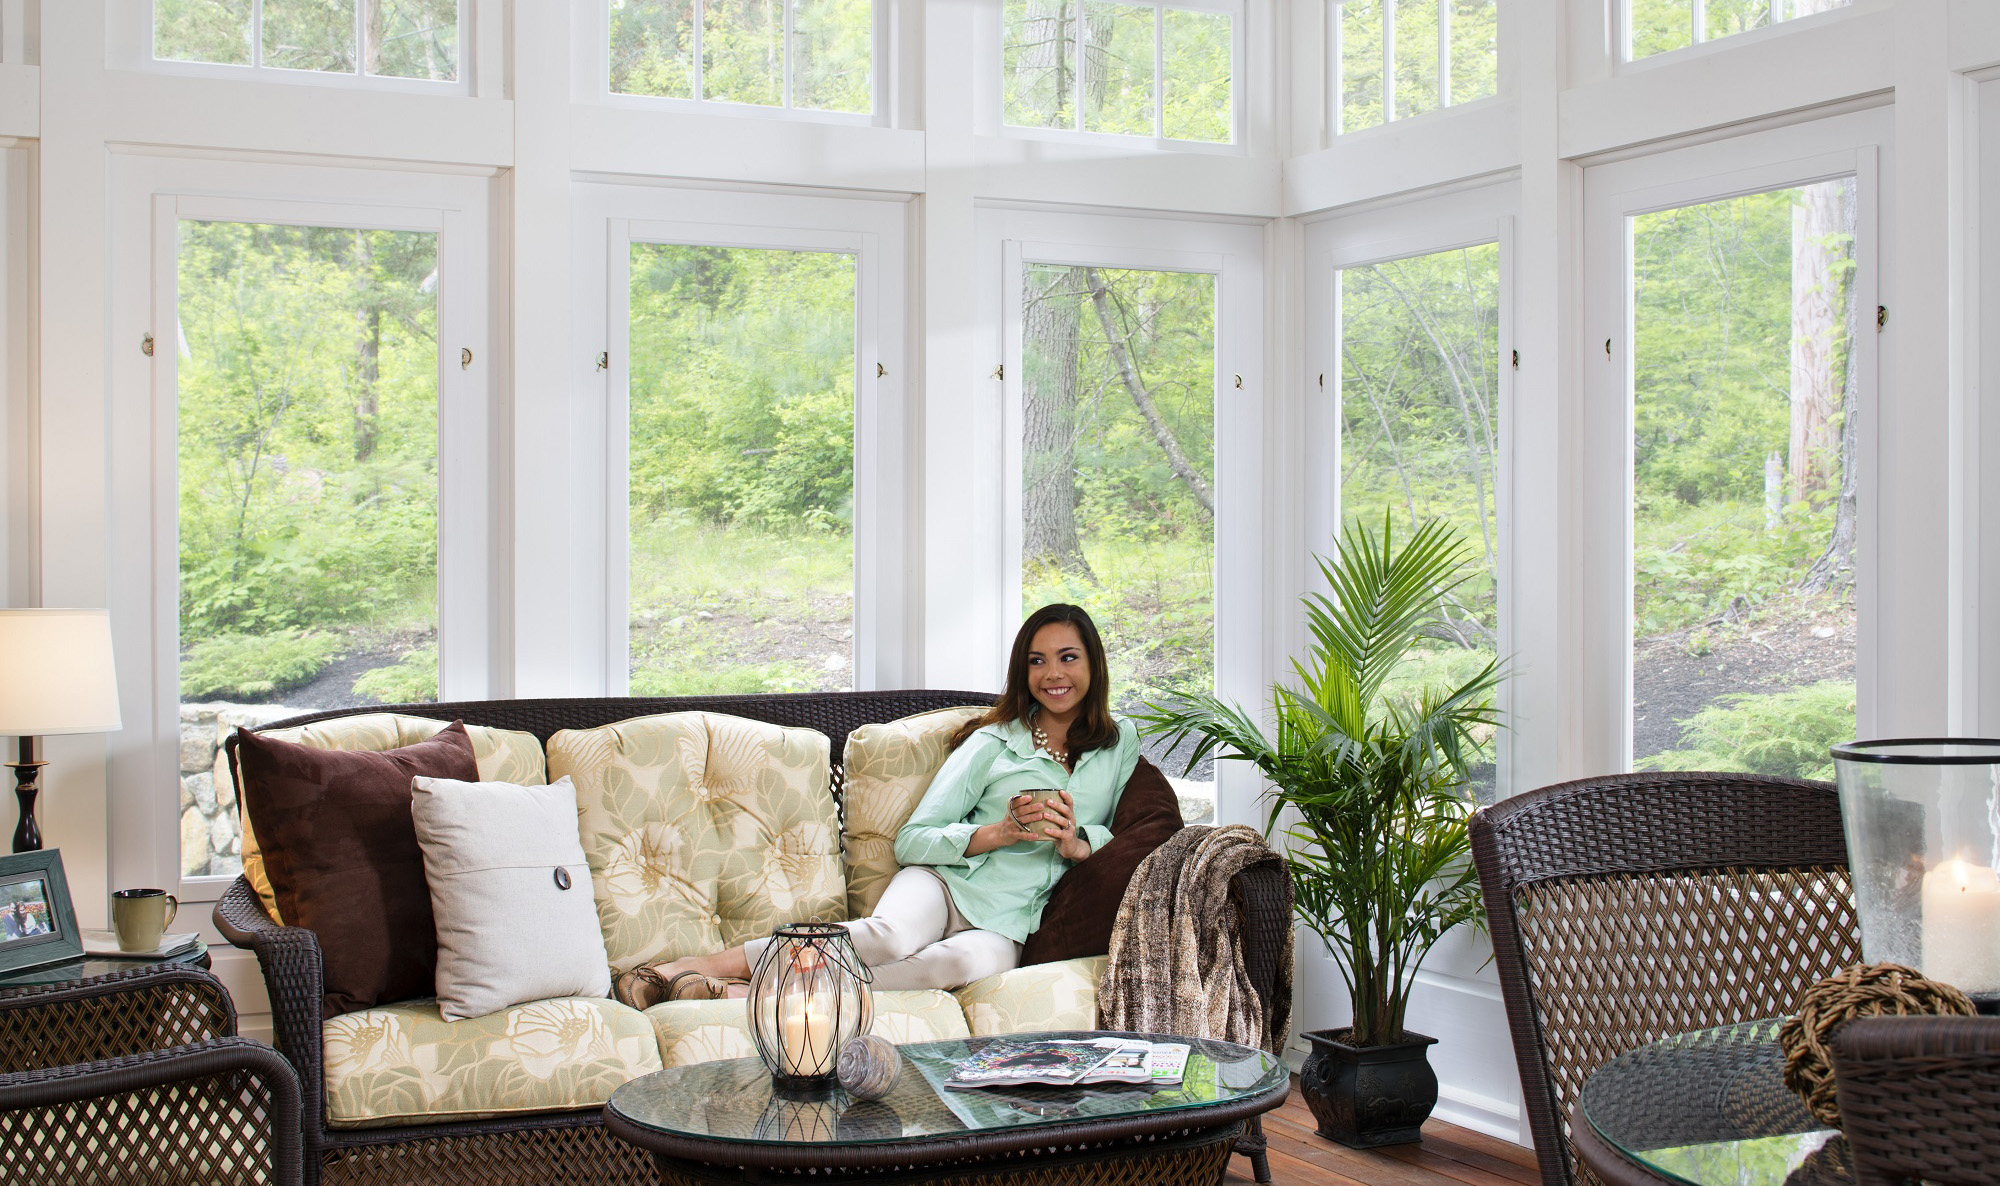 White sunroom with person sitting on the couch